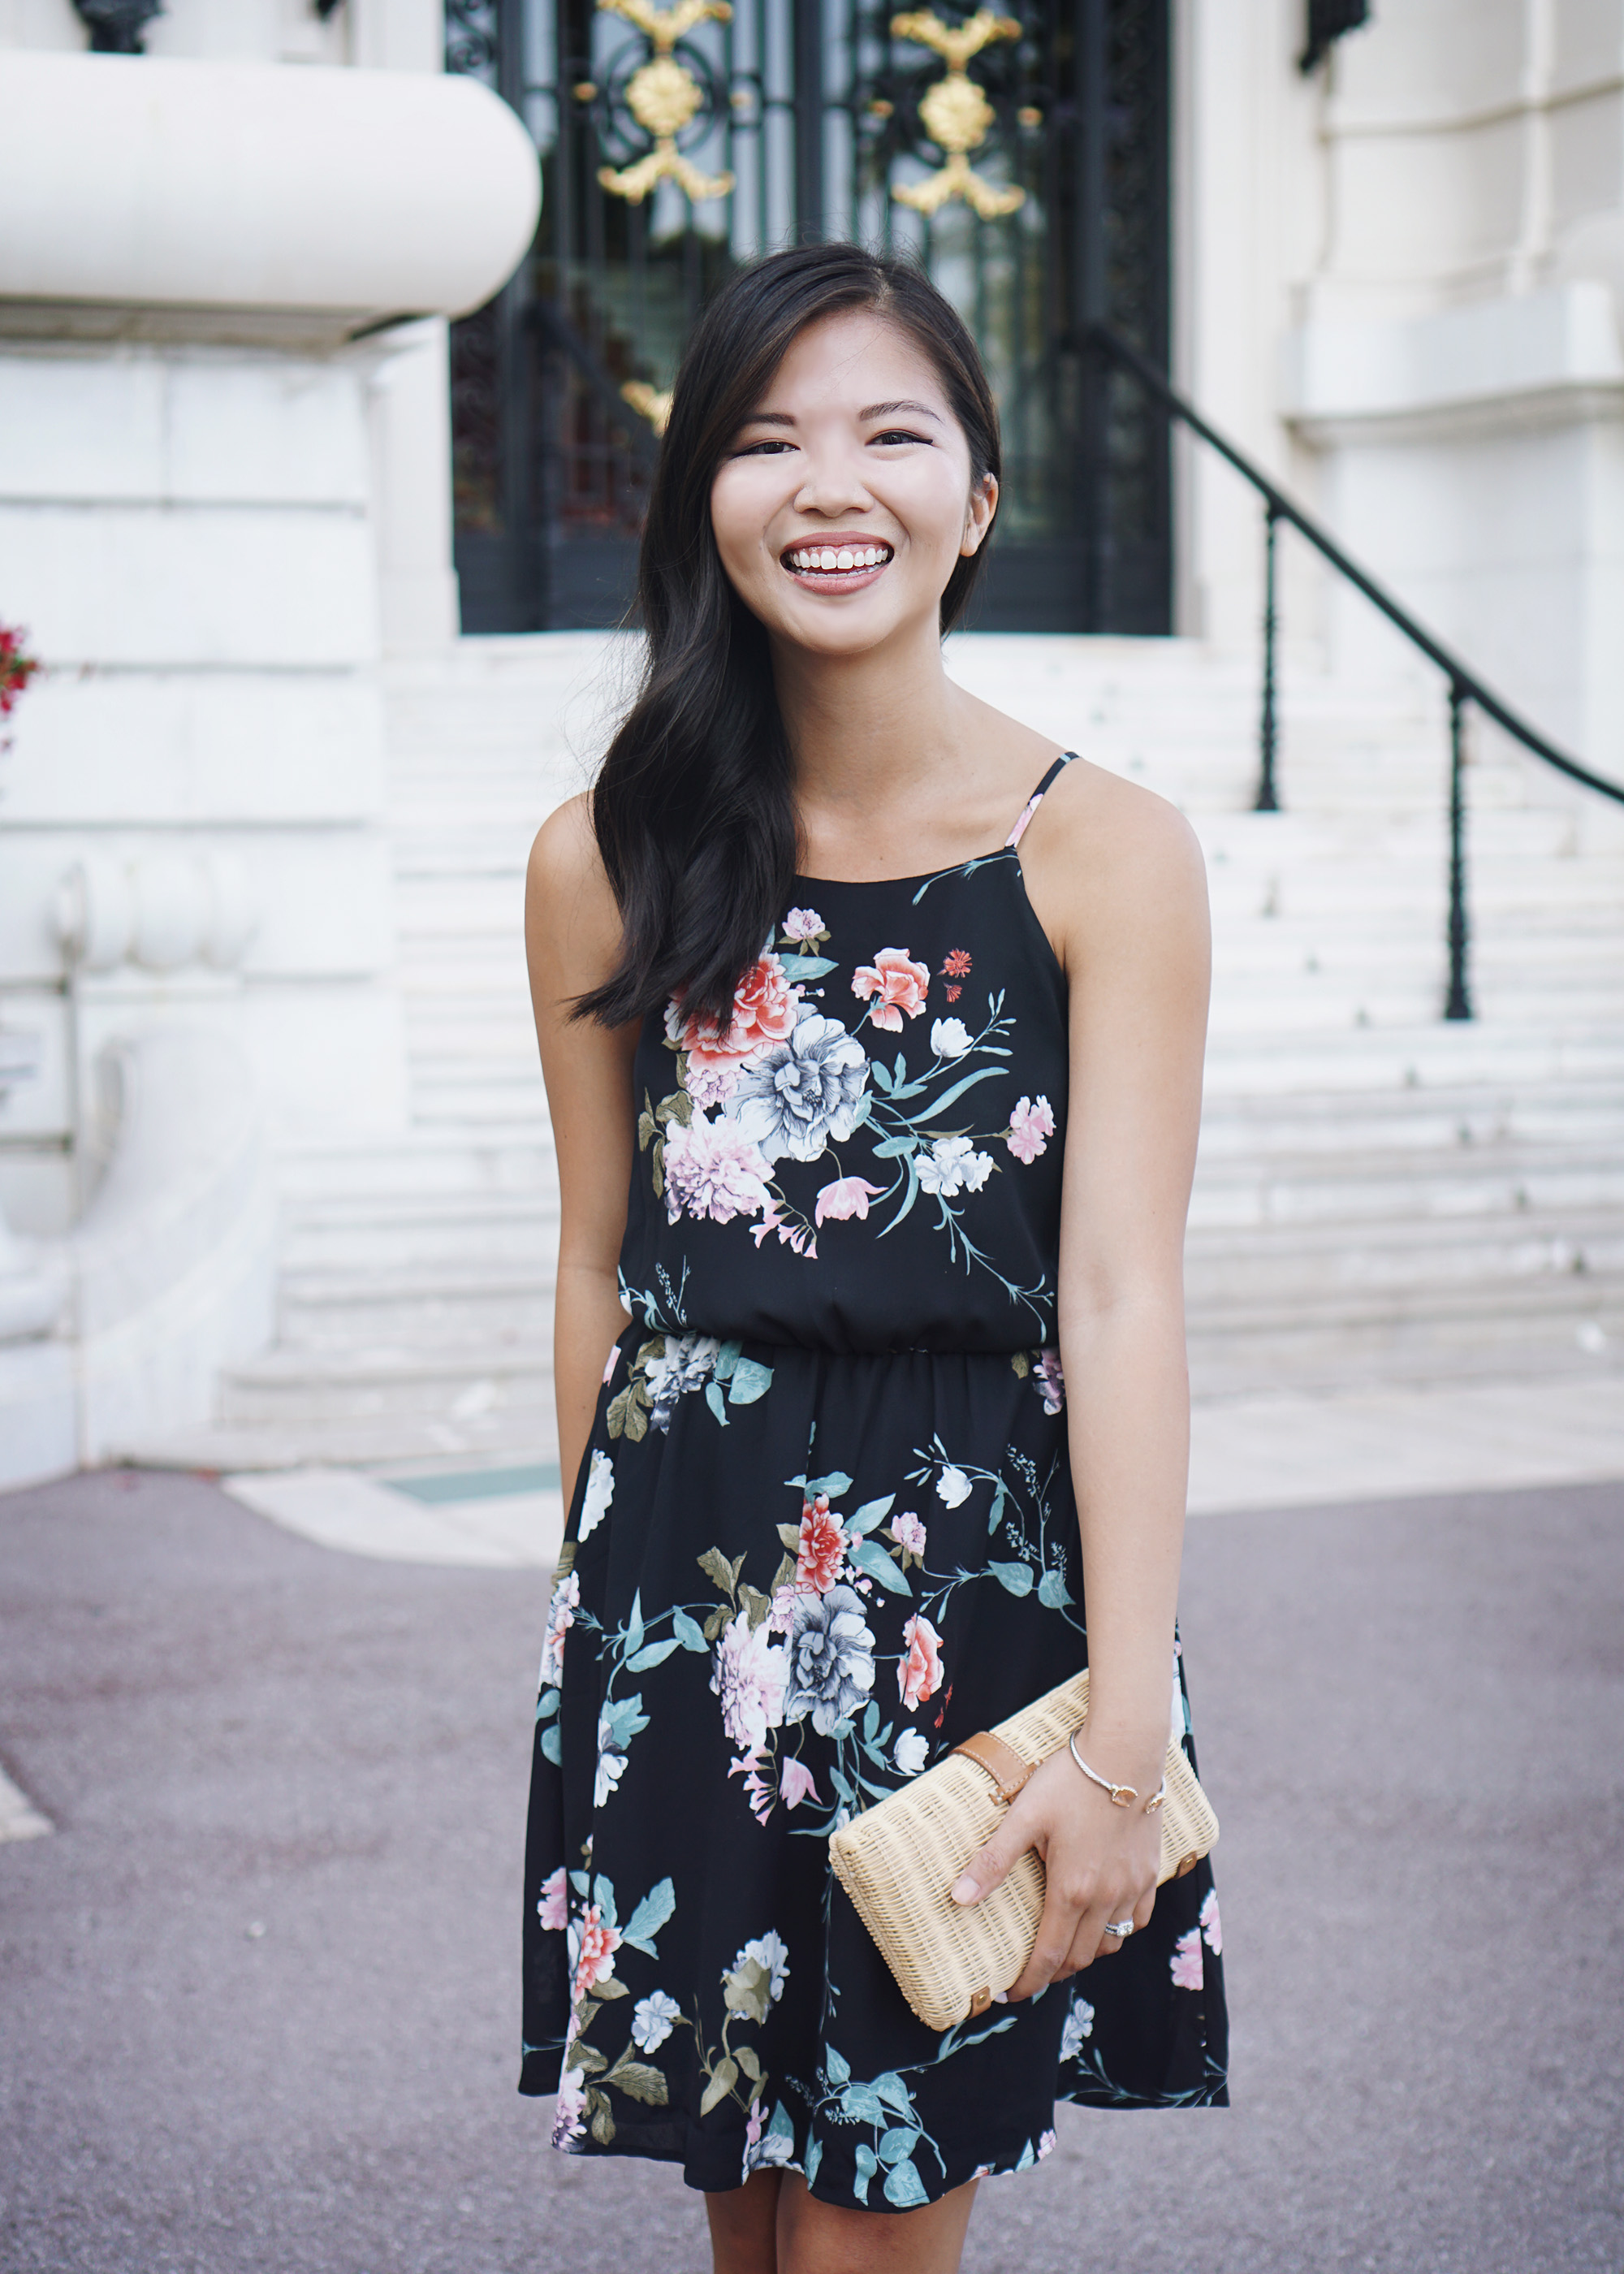 Summer Outfit Inspiration: Black Floral Print Dress